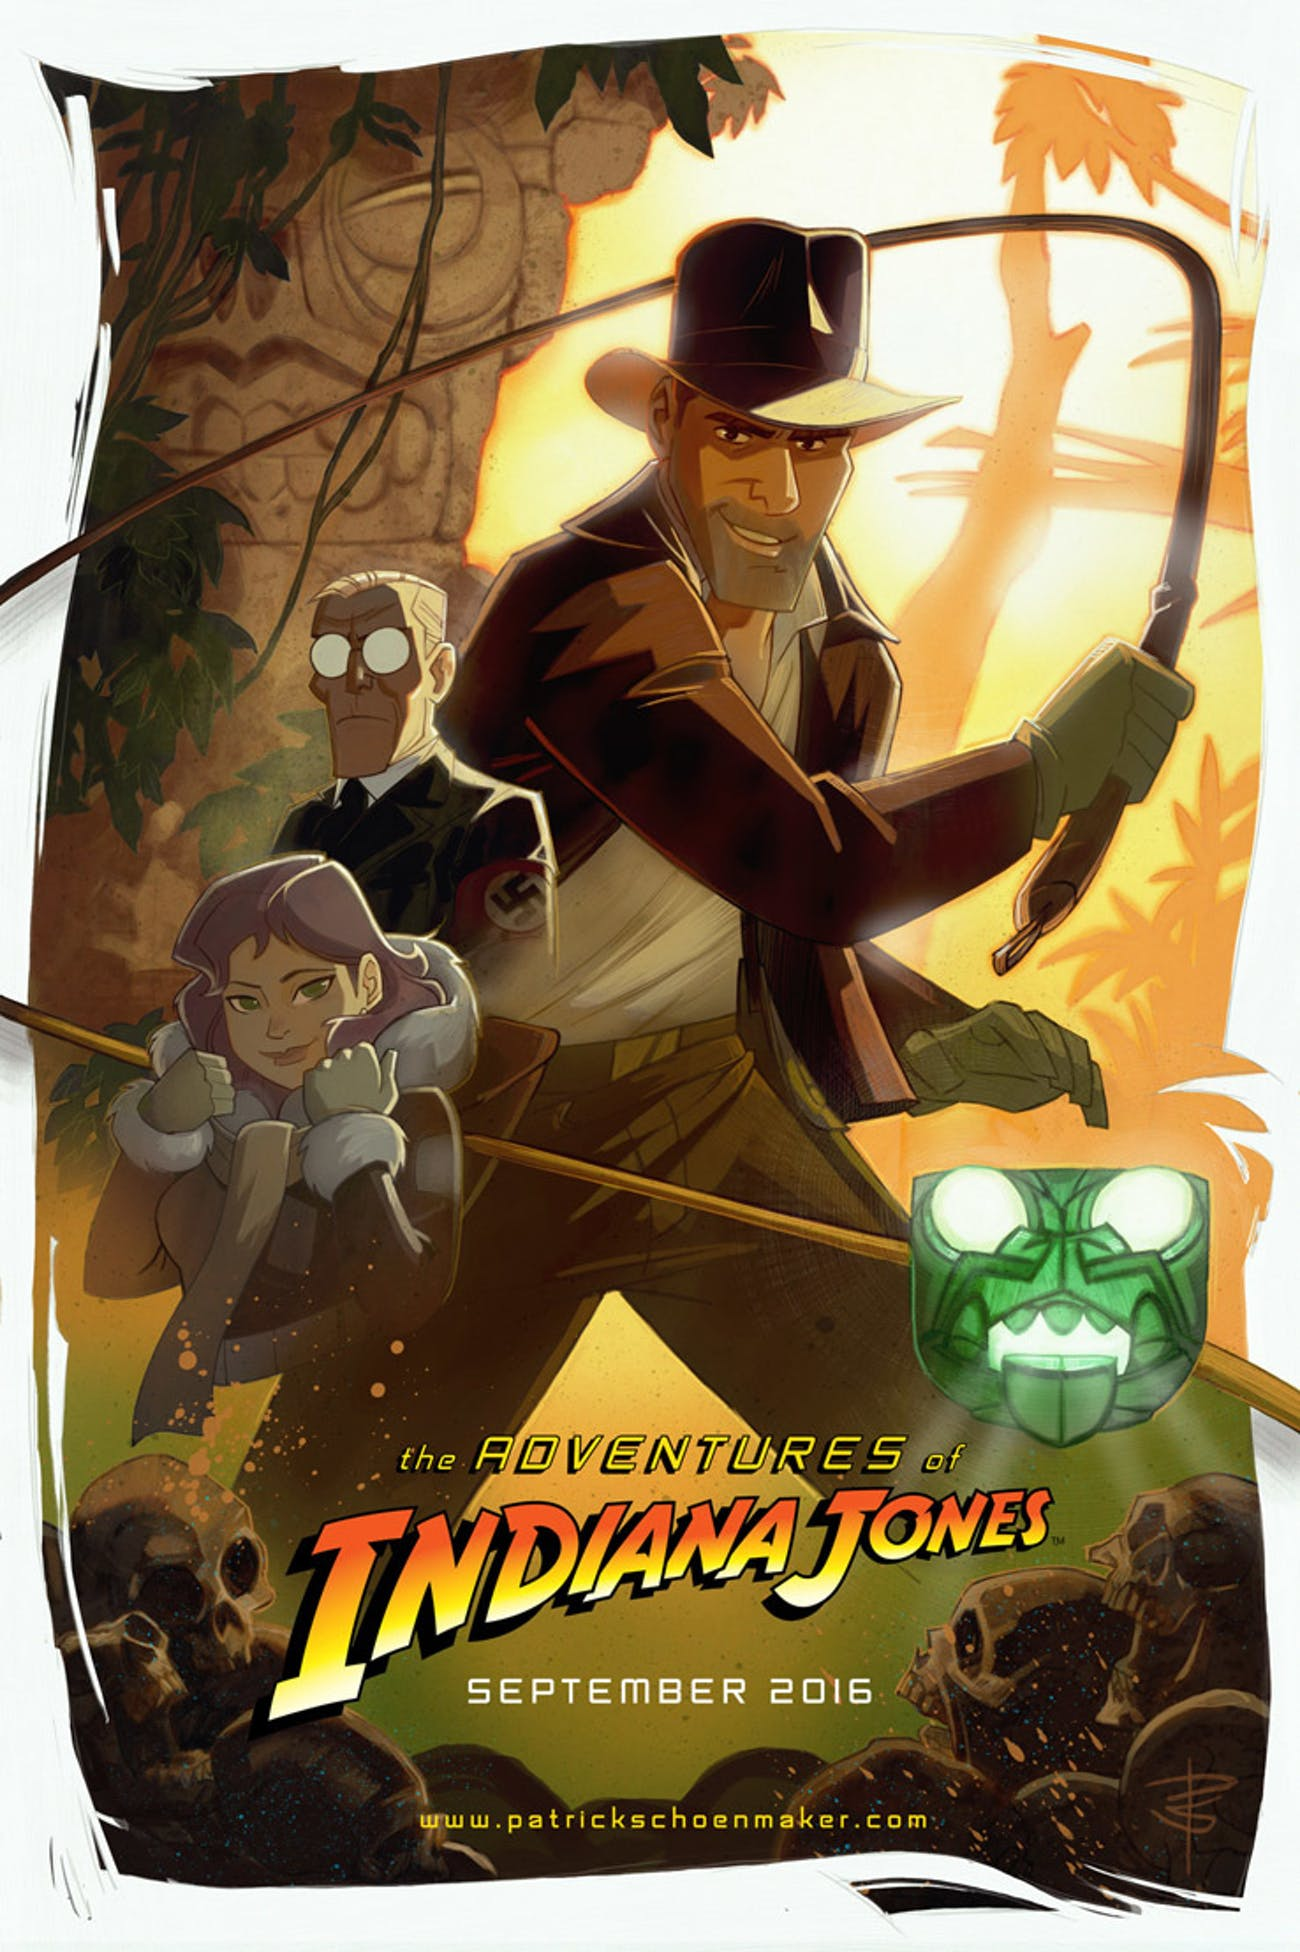 Patrick Schoenmaker's teaser poster for 'The Adventures of Indiana Jones'